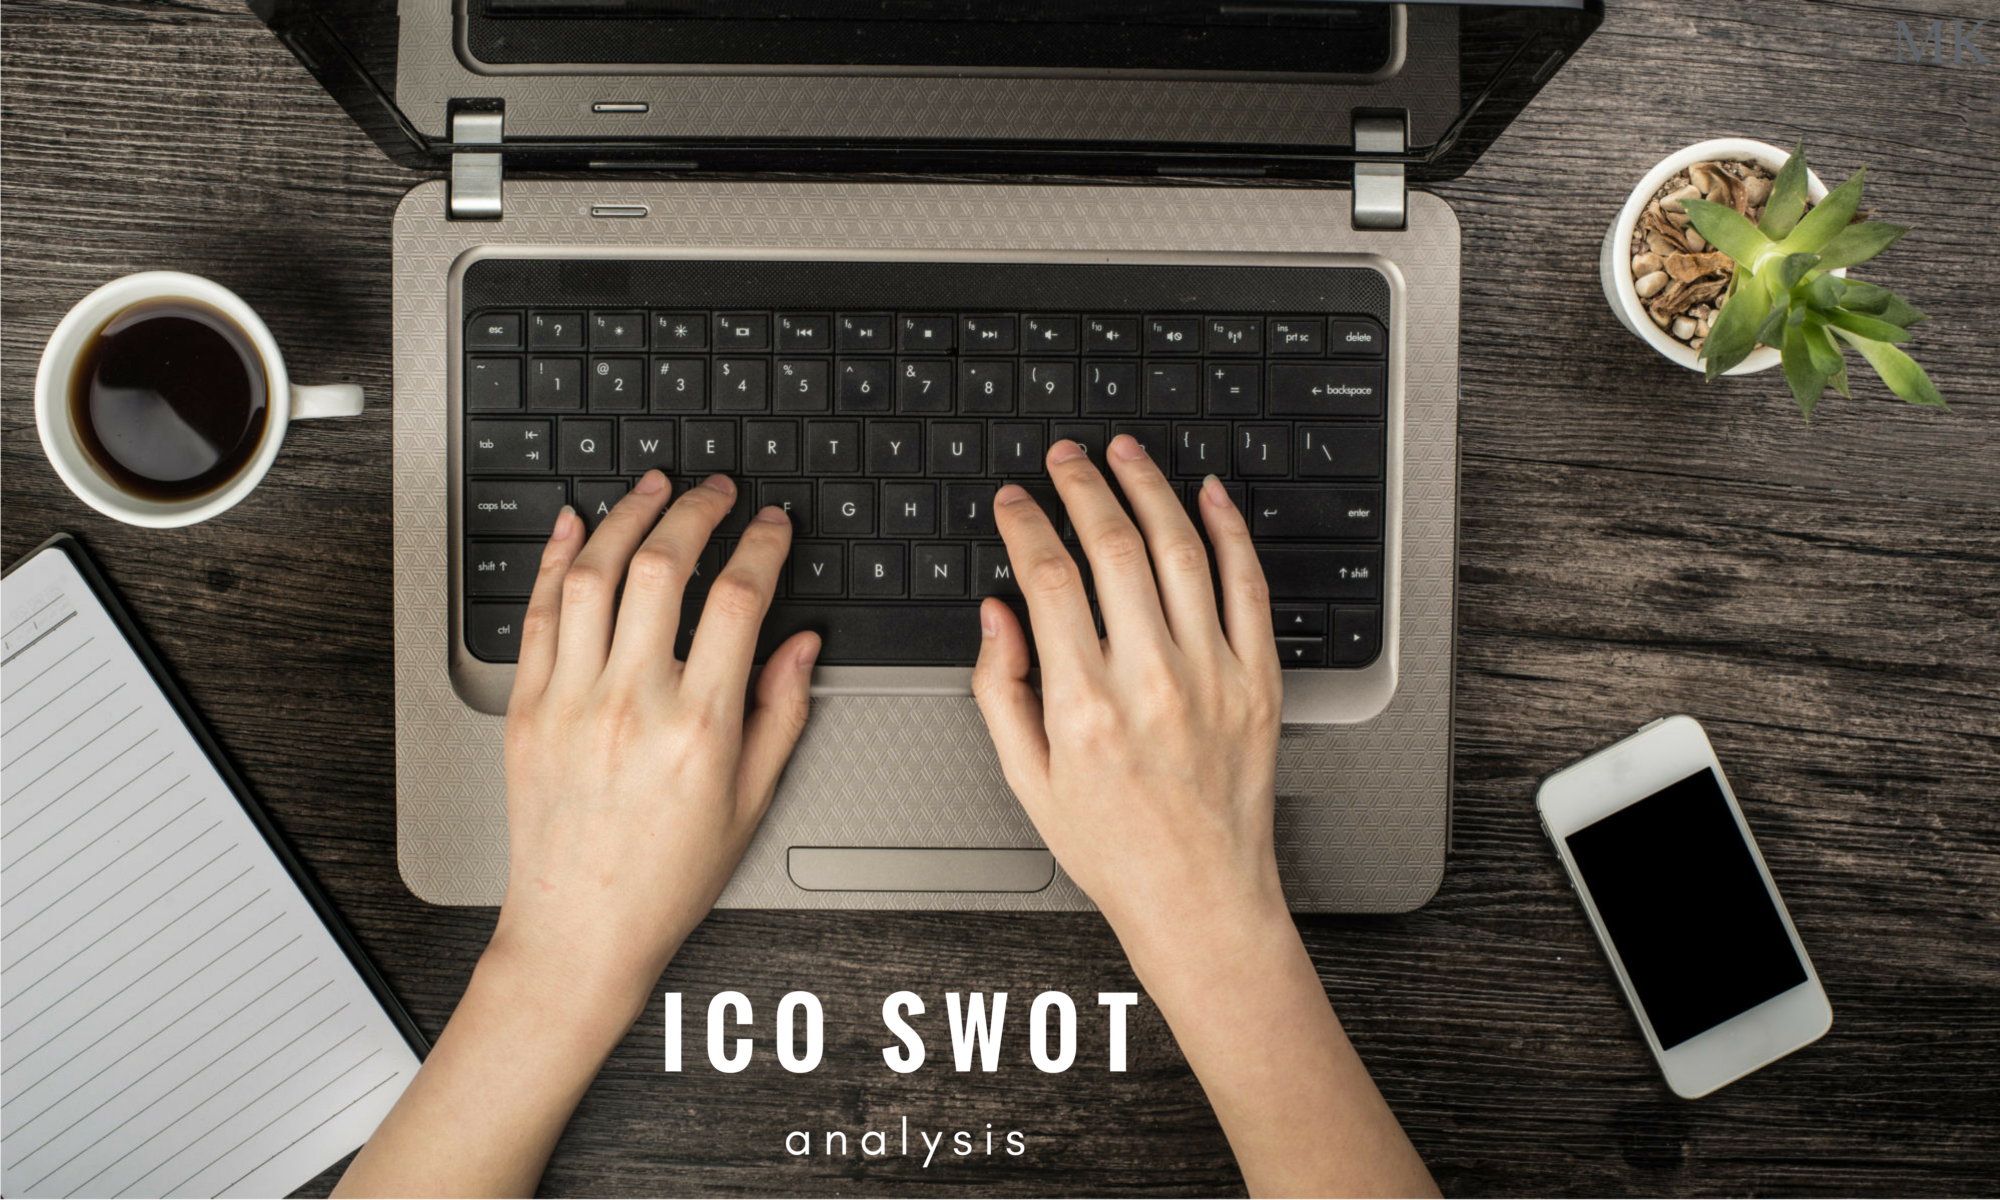 ICO SWOT Analysis